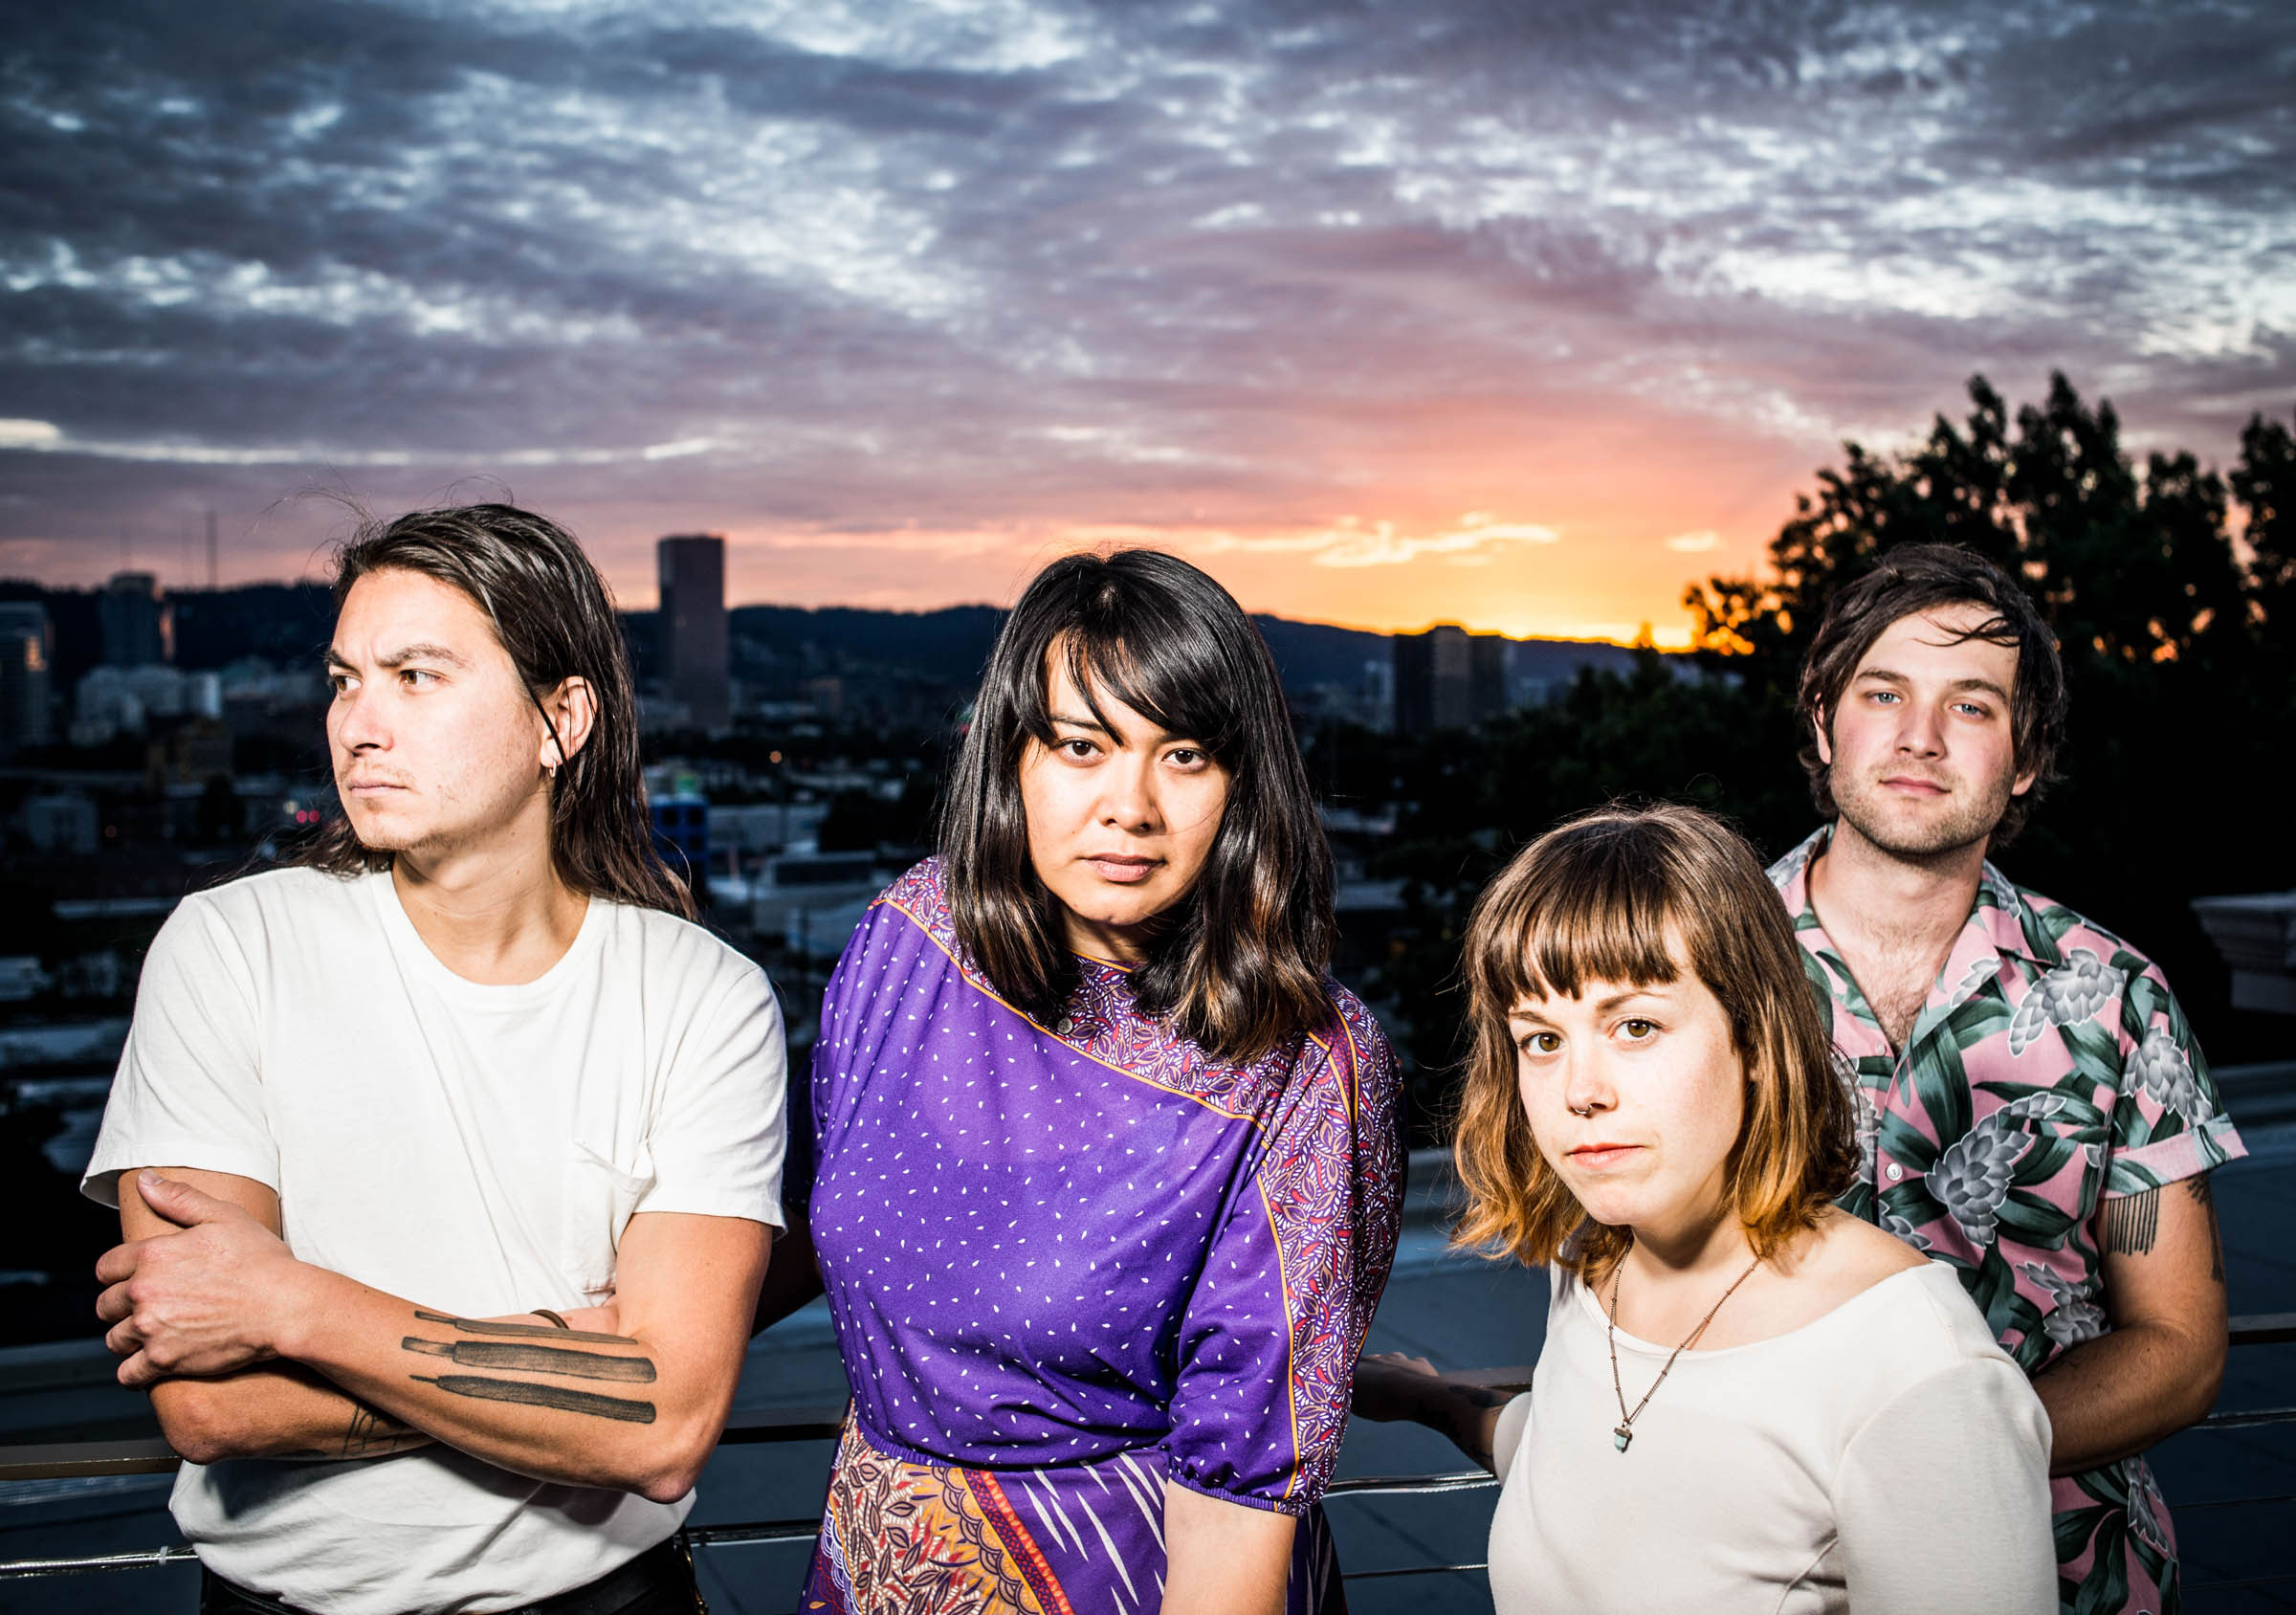 """Northern Transmissions' 'Song of the Day' is """"Never Belonged To You"""" by Genders, taken from their upcoming sixth release 'Phone Home'."""